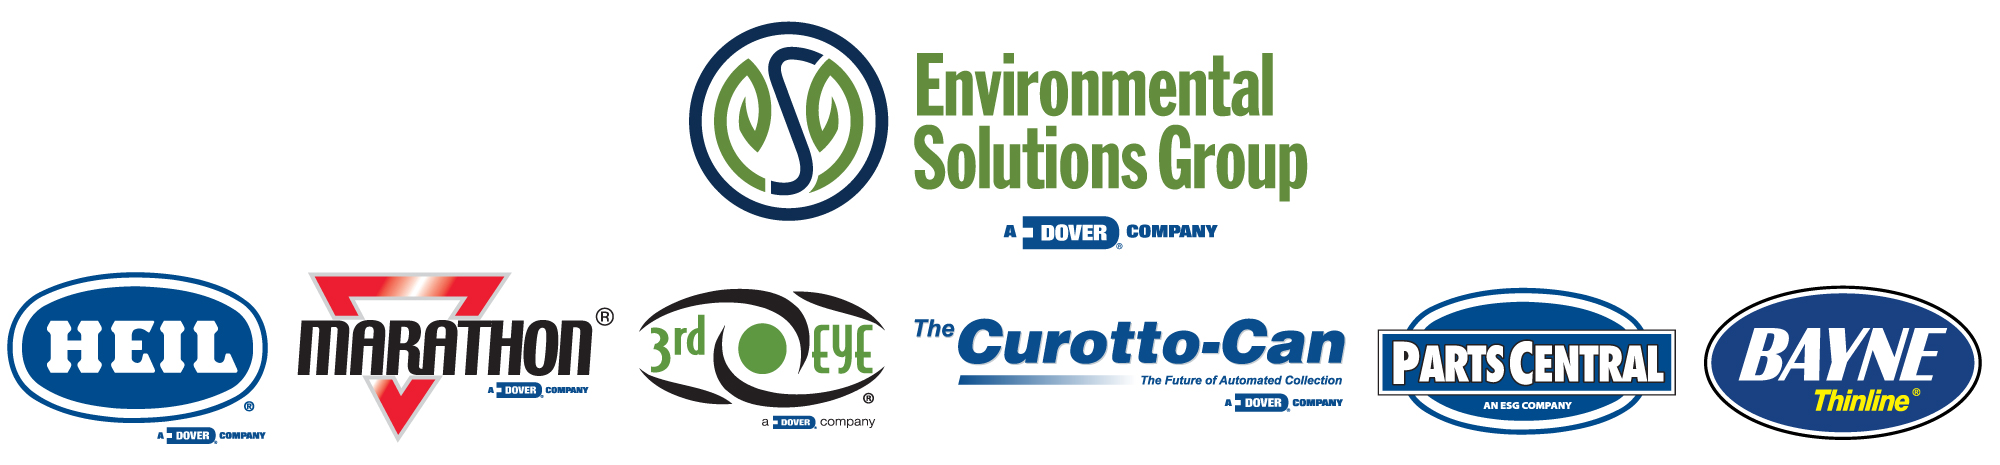 Environmental Solutions Group Companies